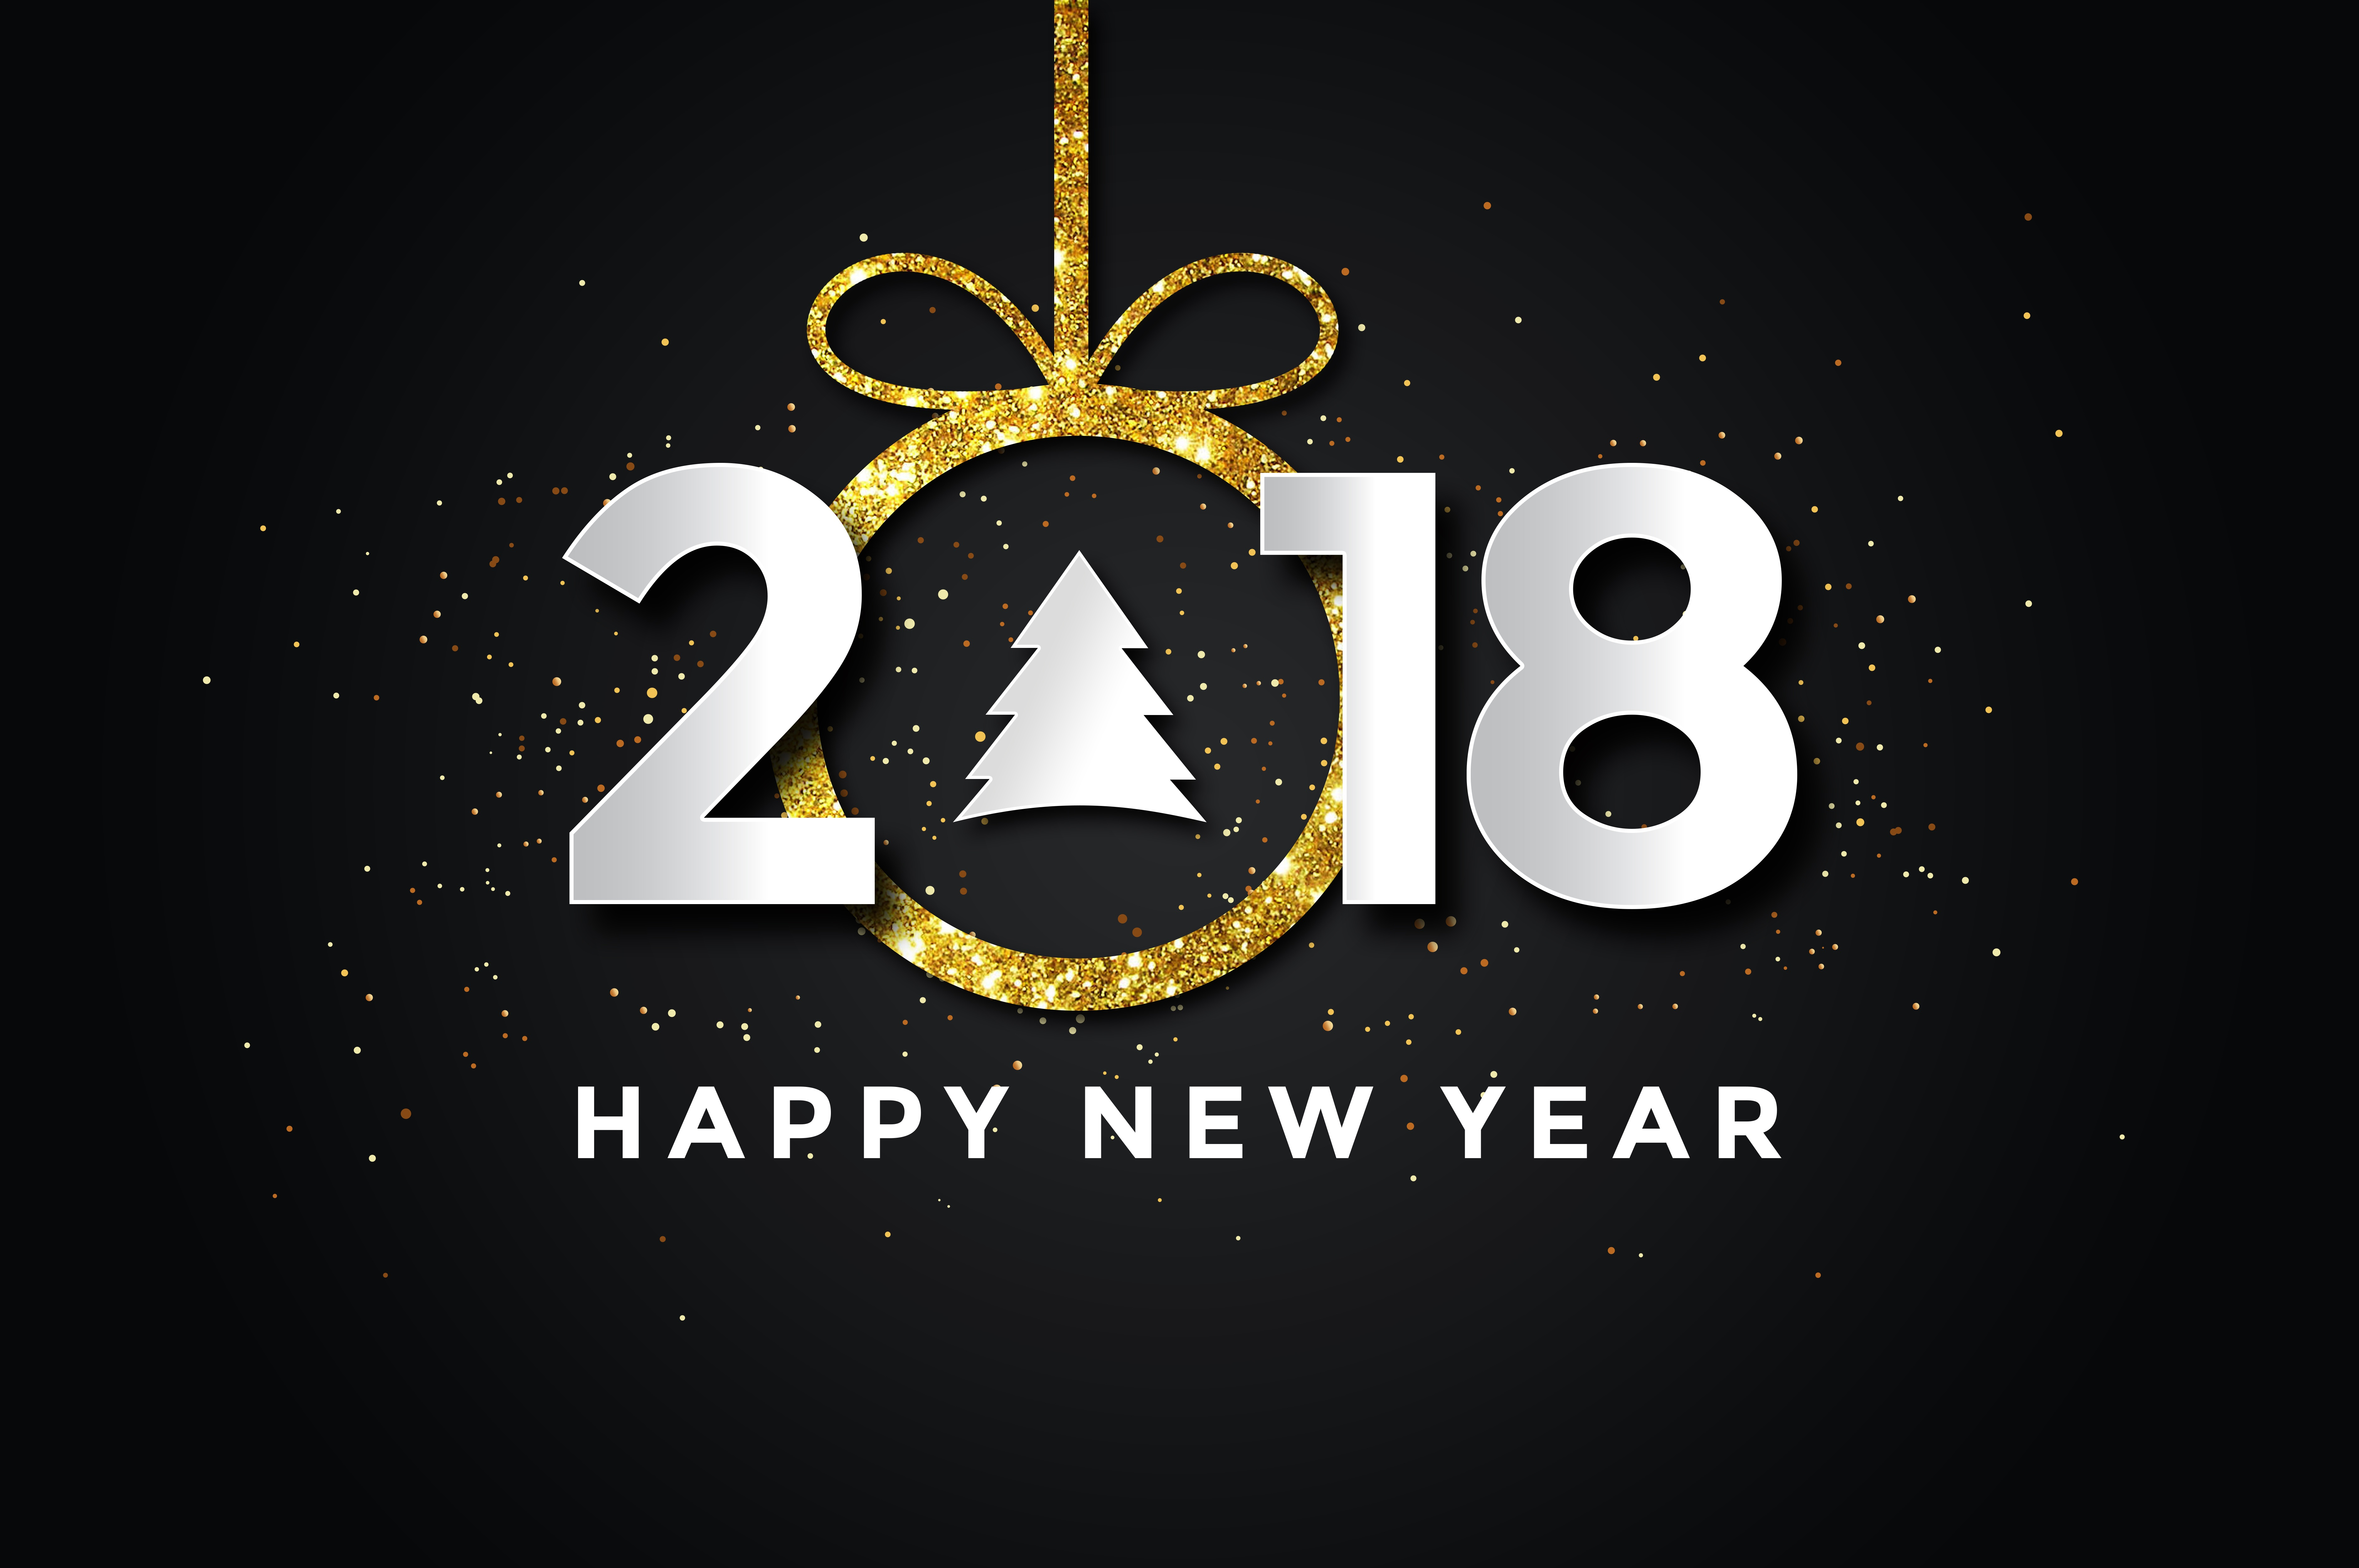 happy new year new year new year 2018 hd wallpaper background image id891036